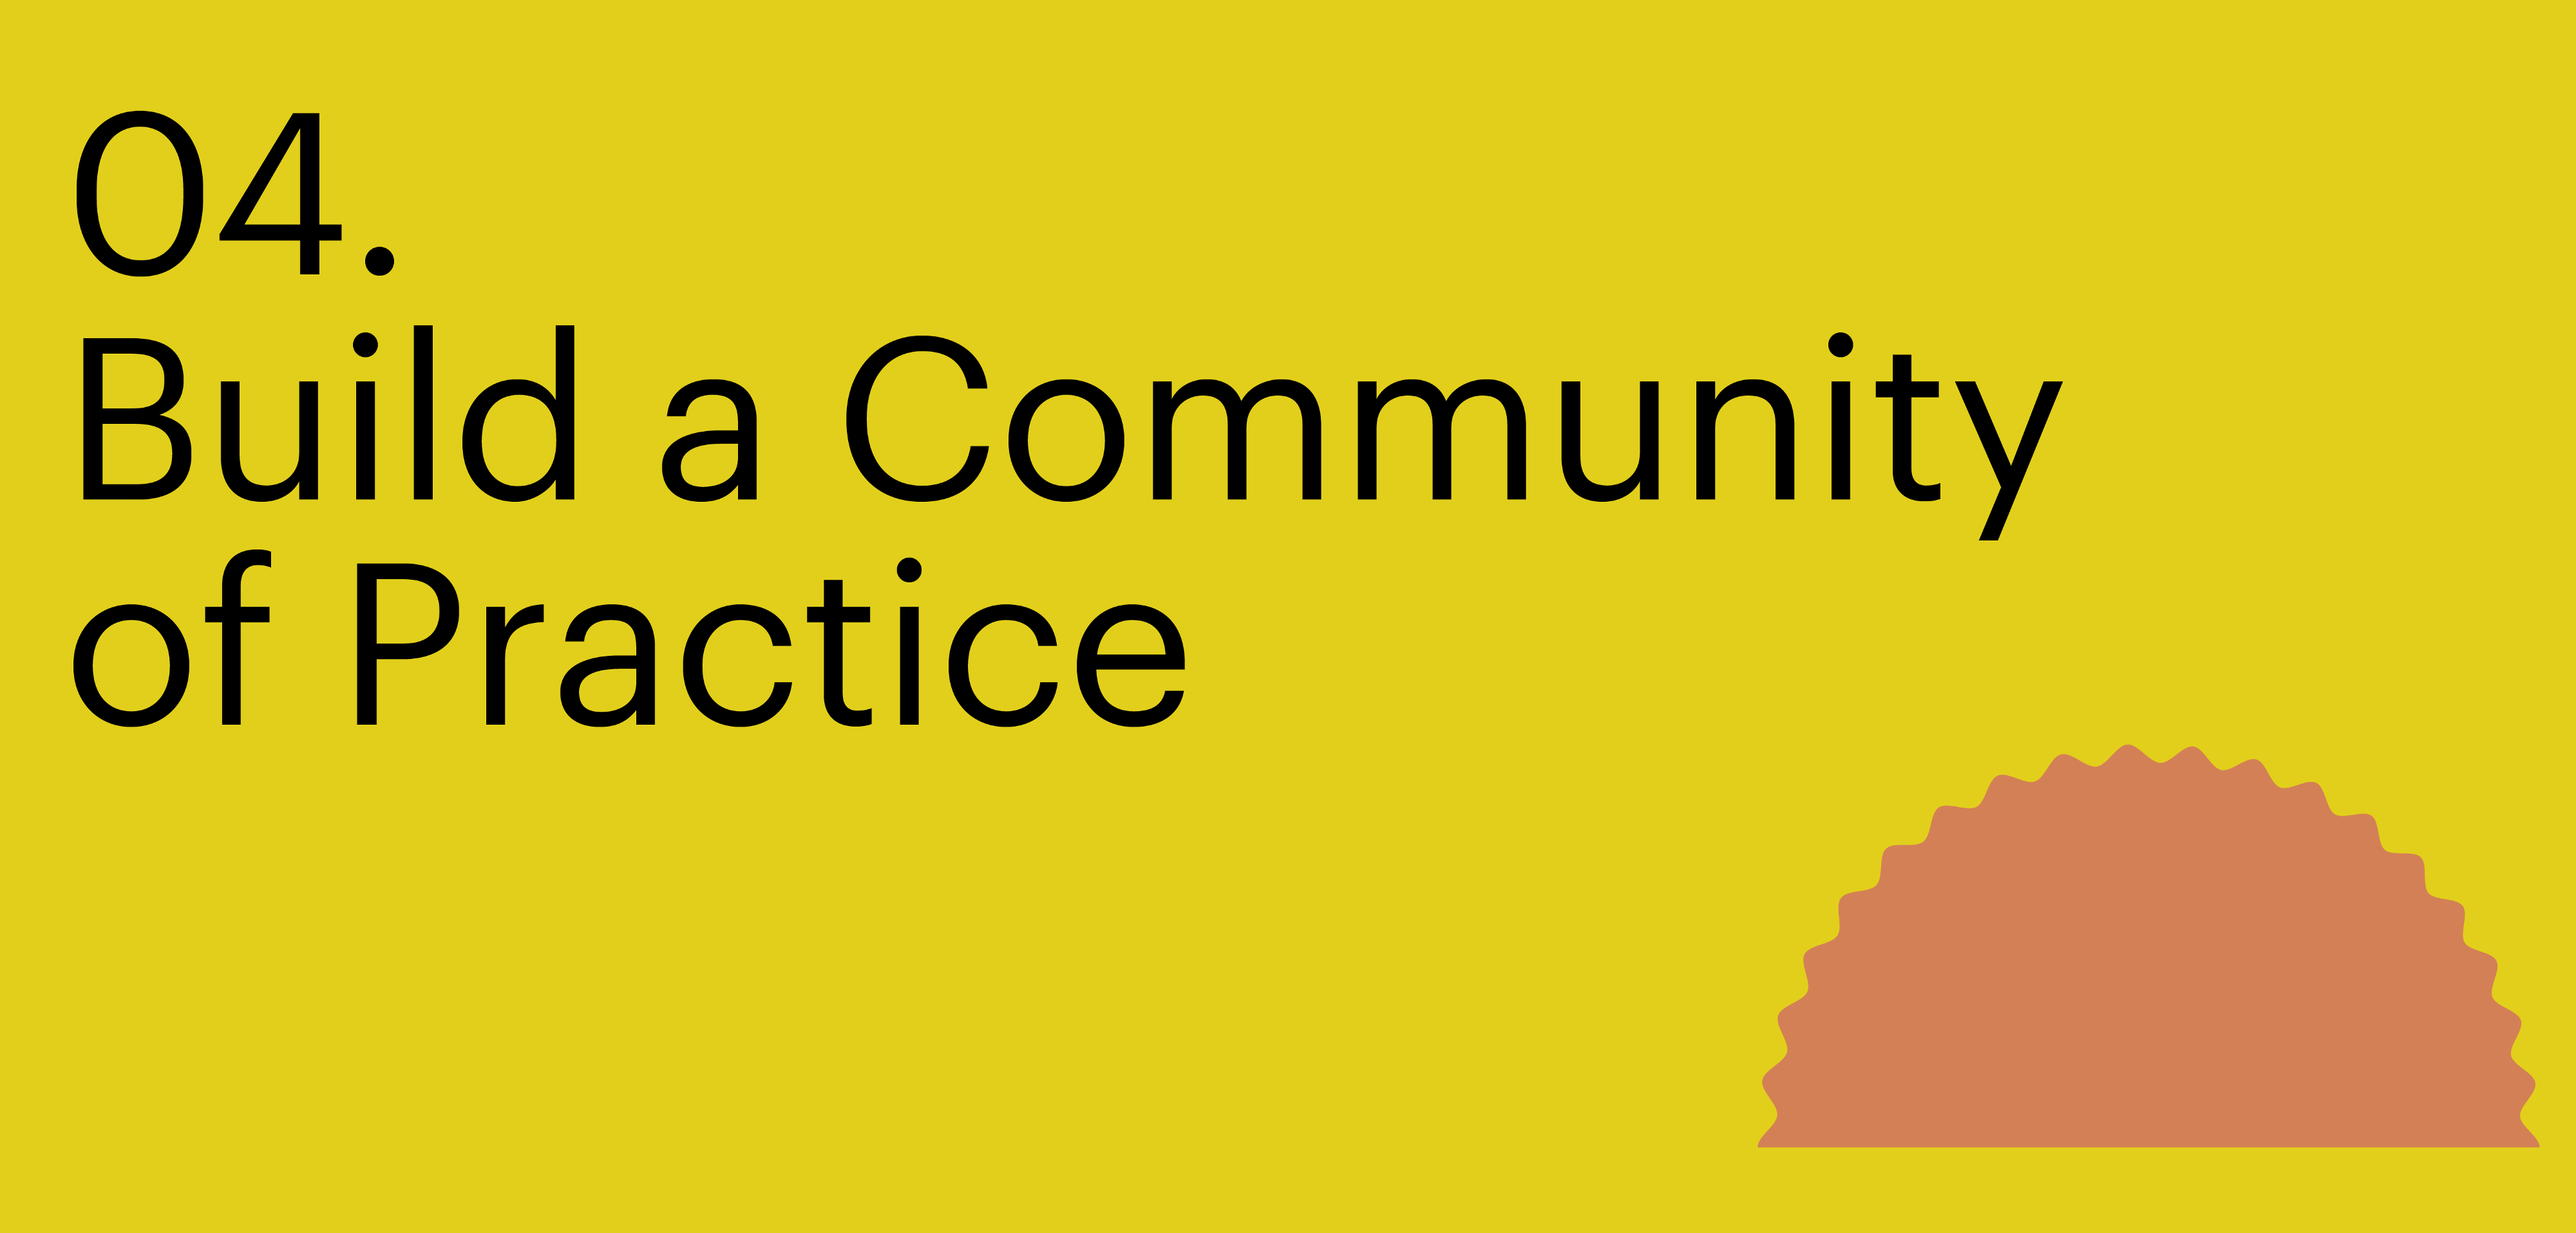 Principle four. Build a Community of Practice